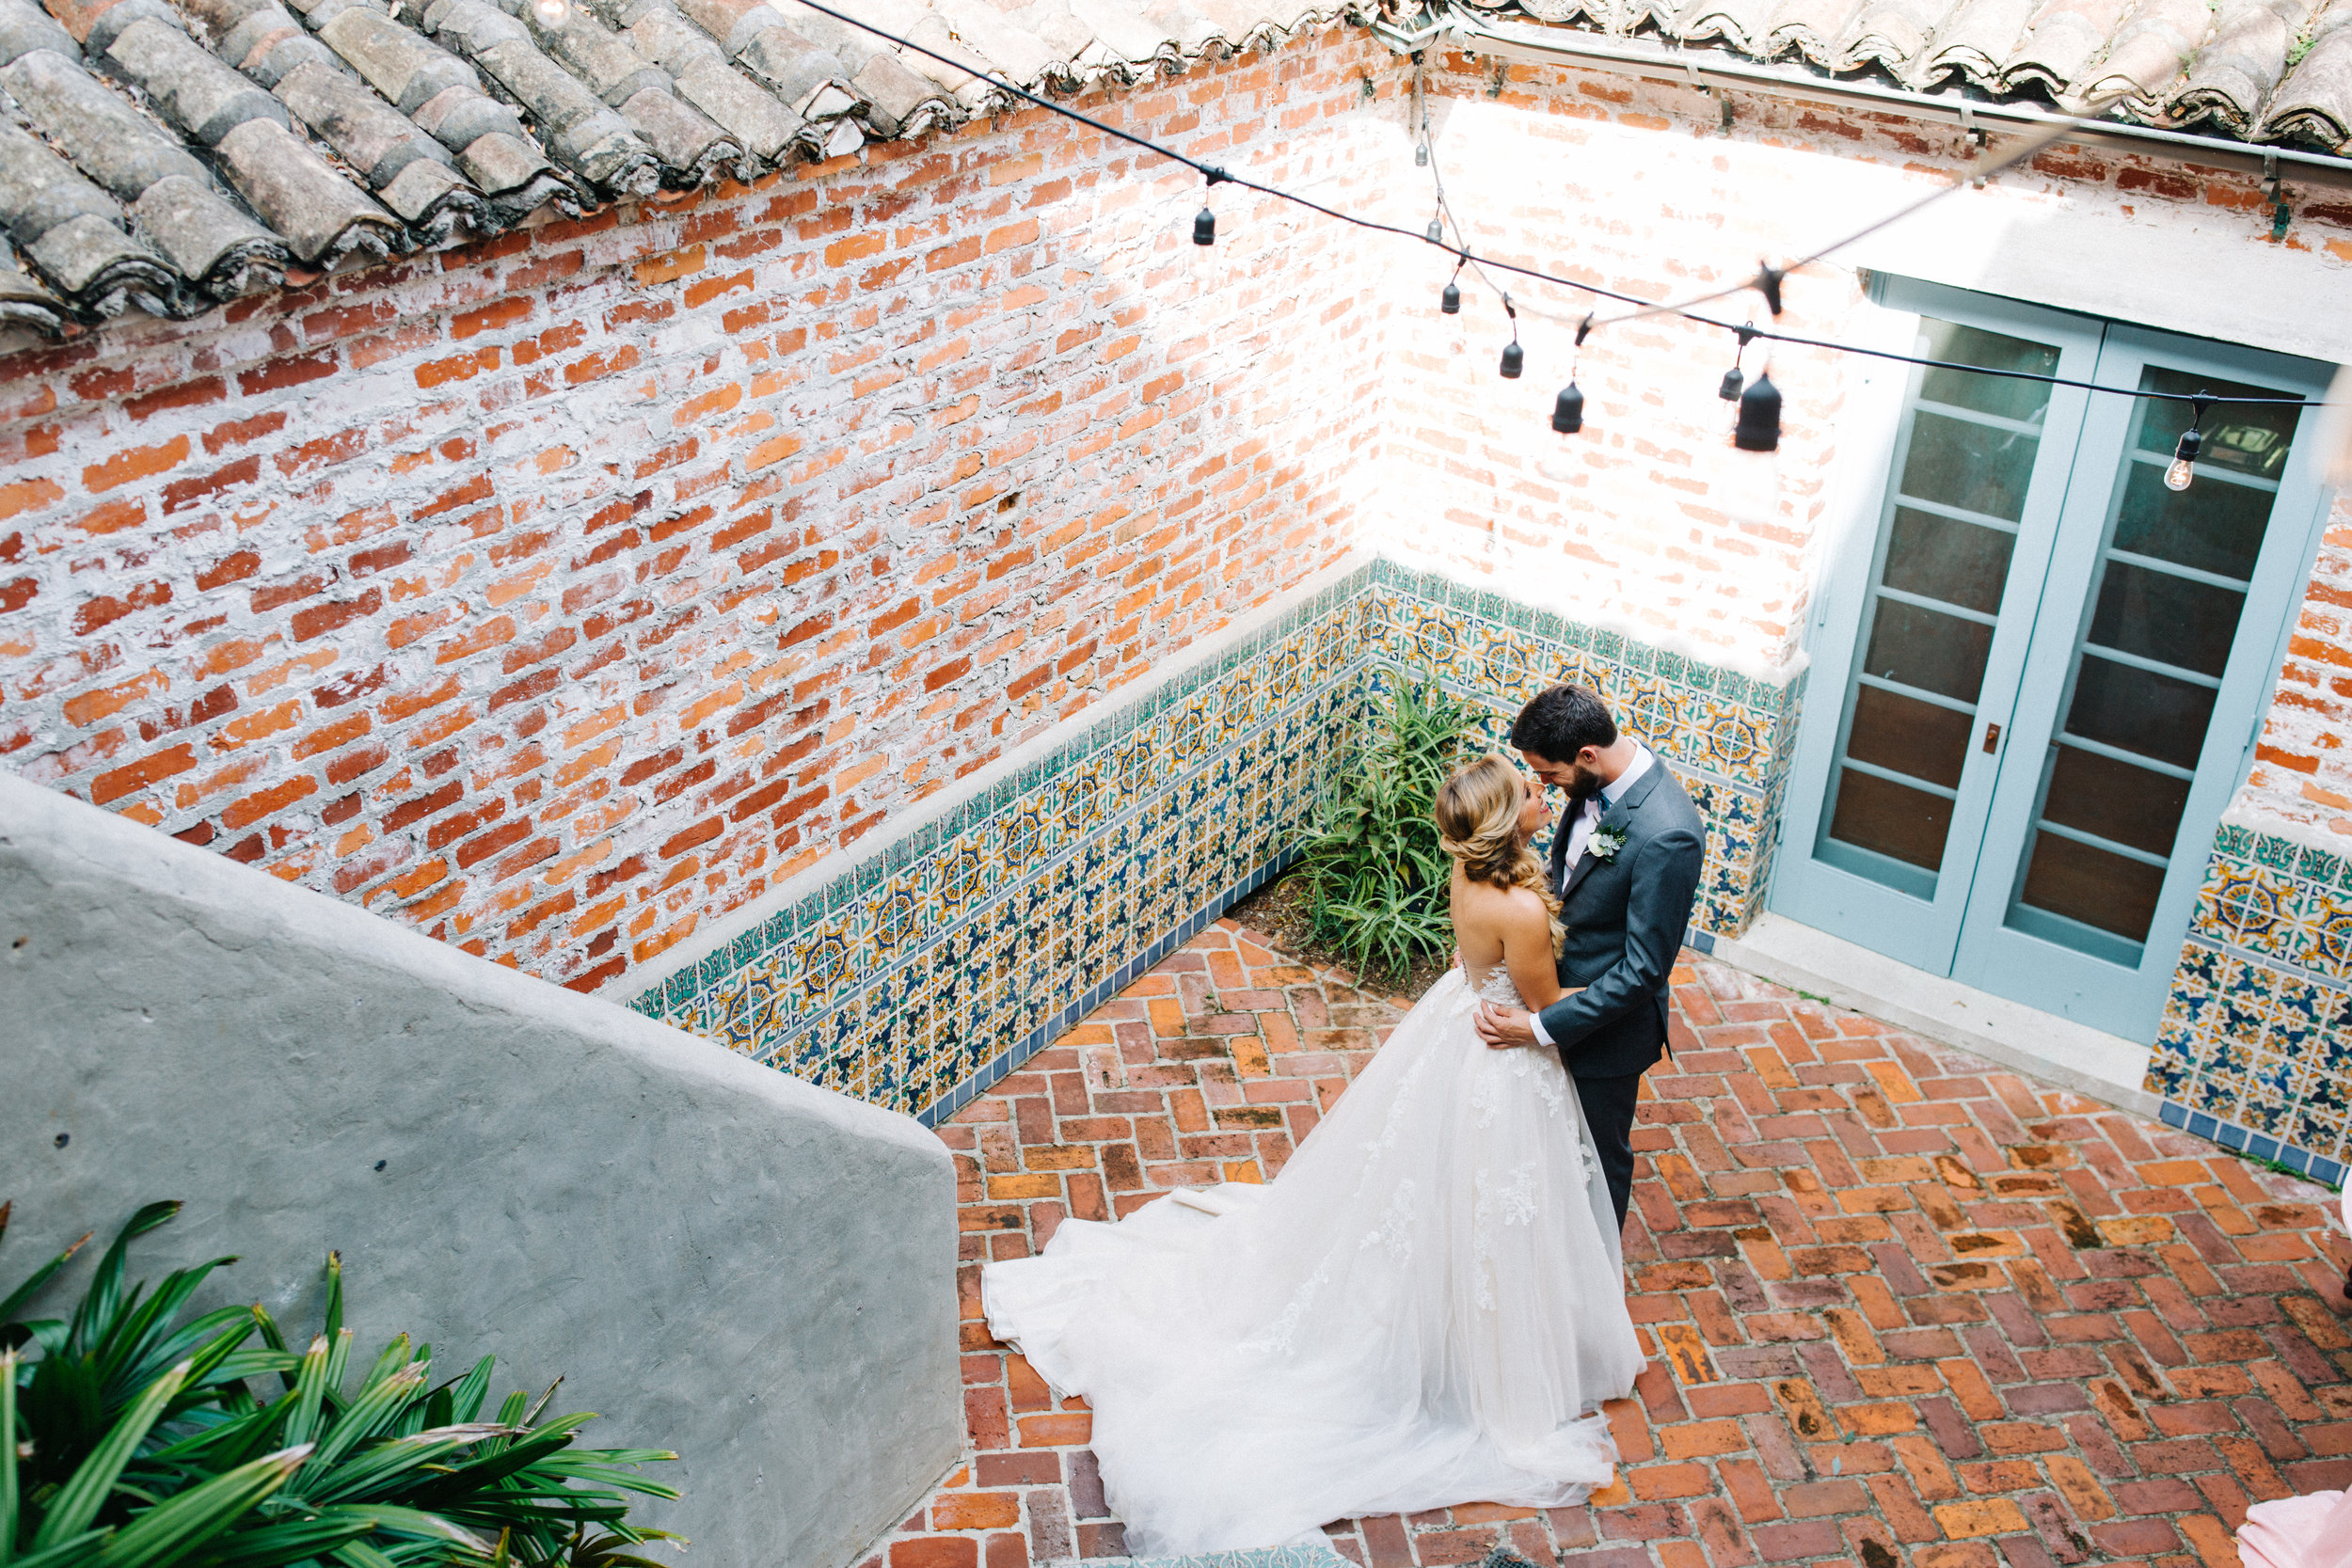 Orlando-Wedding-Photographer_Wedding-at-Casa-Feliz_Kaylin-and-Evan_Orlando-FL0299.jpg